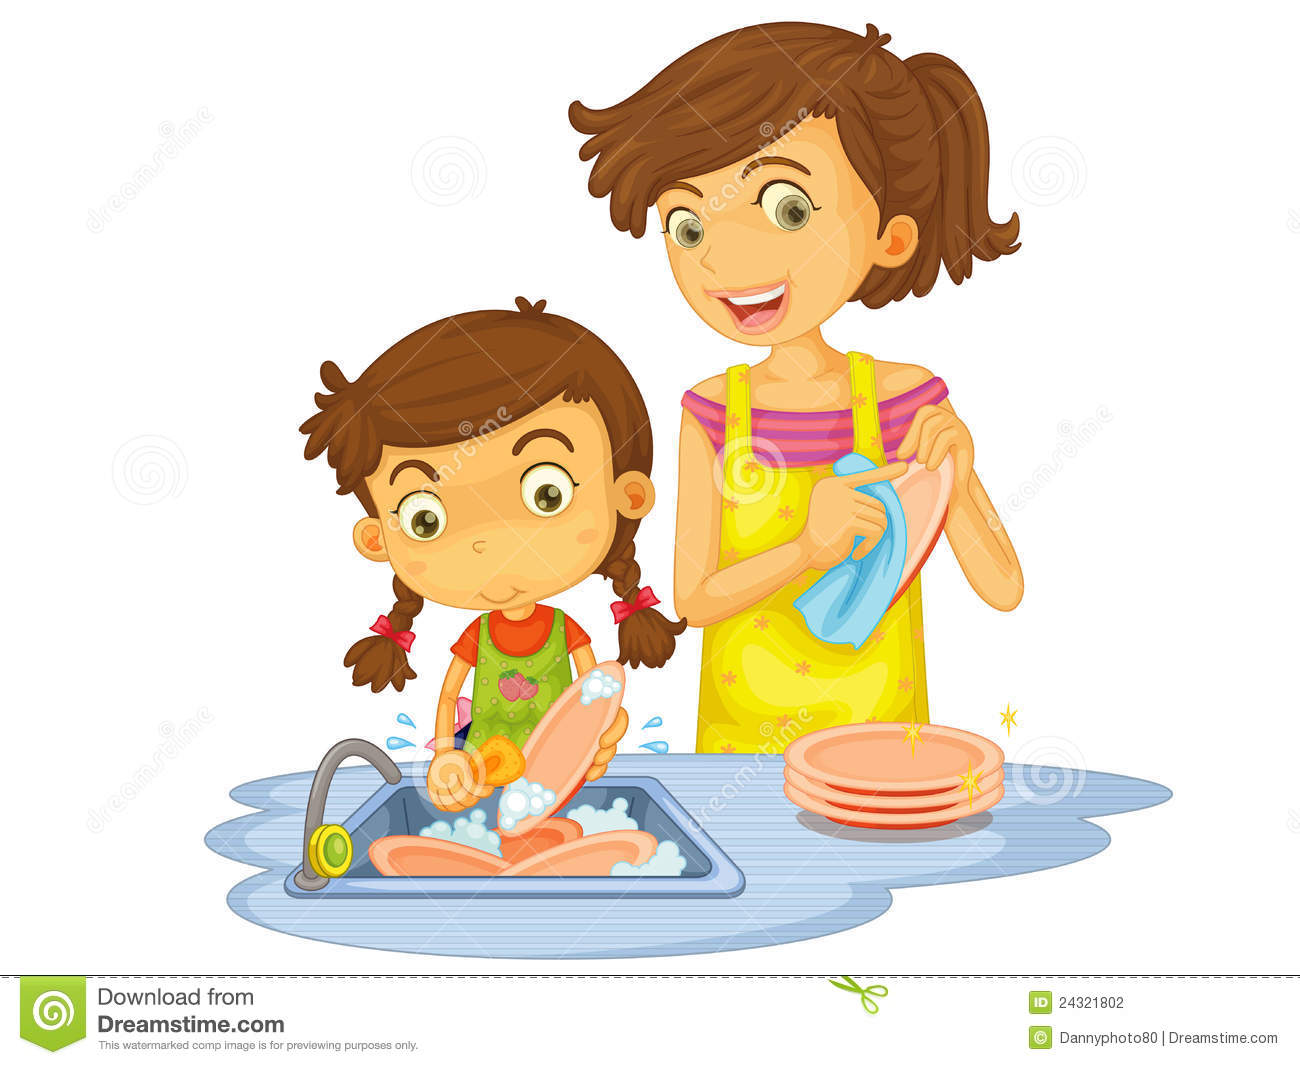 Washing dishes by hand clipart image transparent Washing dishes by hand clipart - ClipartFest image transparent